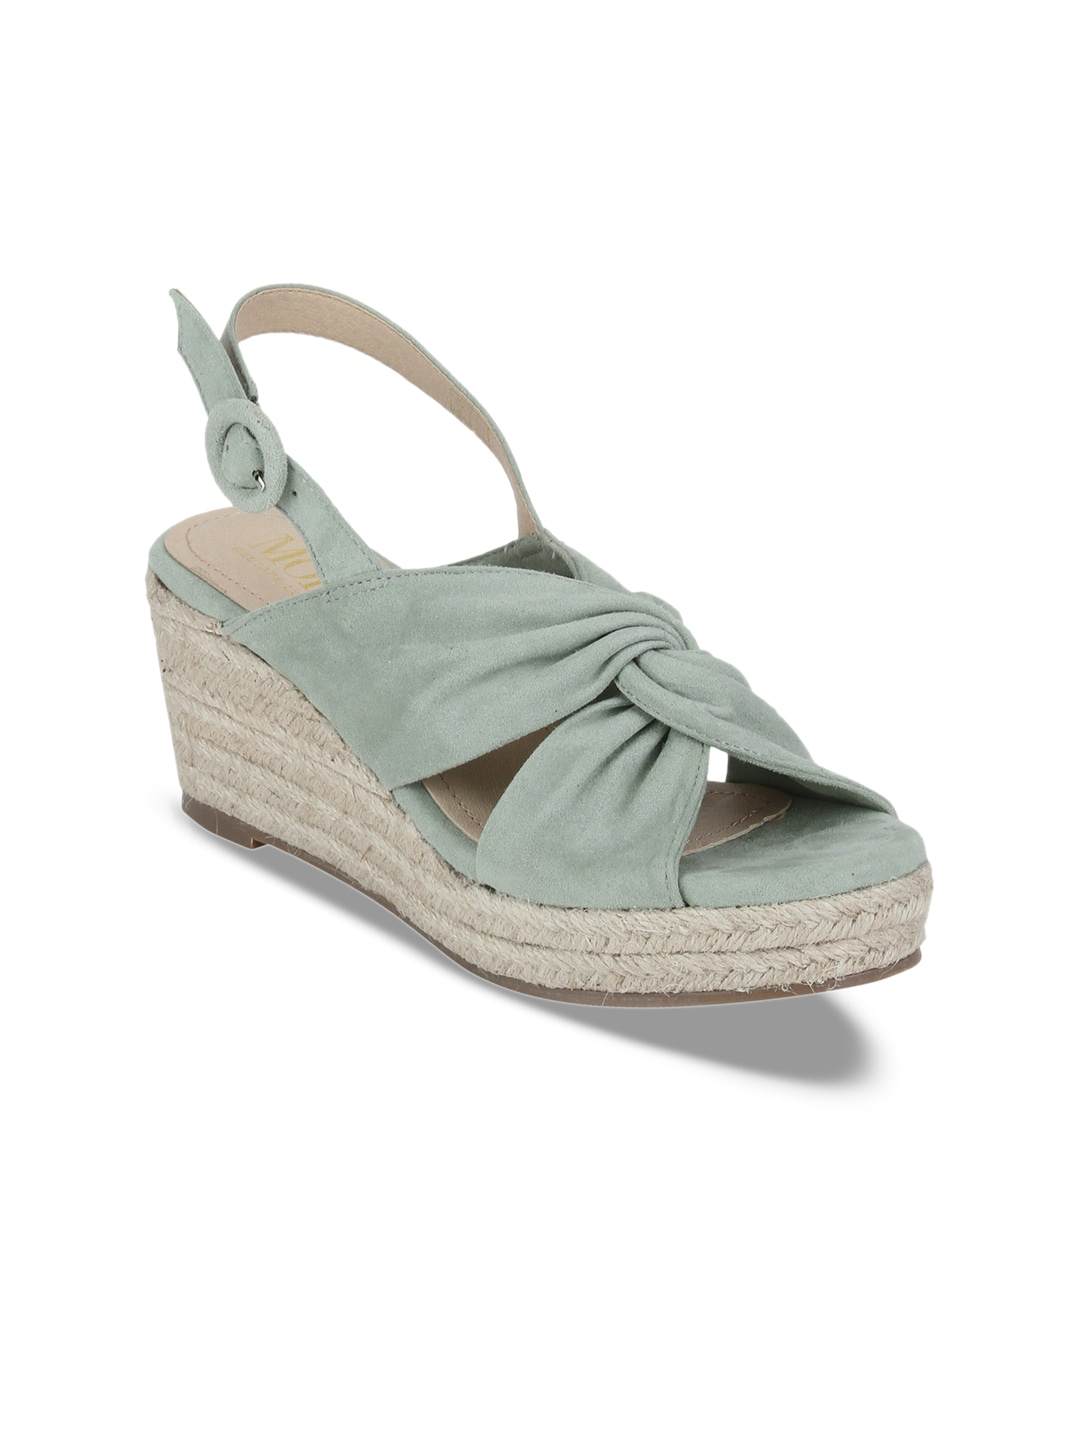 a052a55baea Mode by Red Tape Women Green Solid Sandals